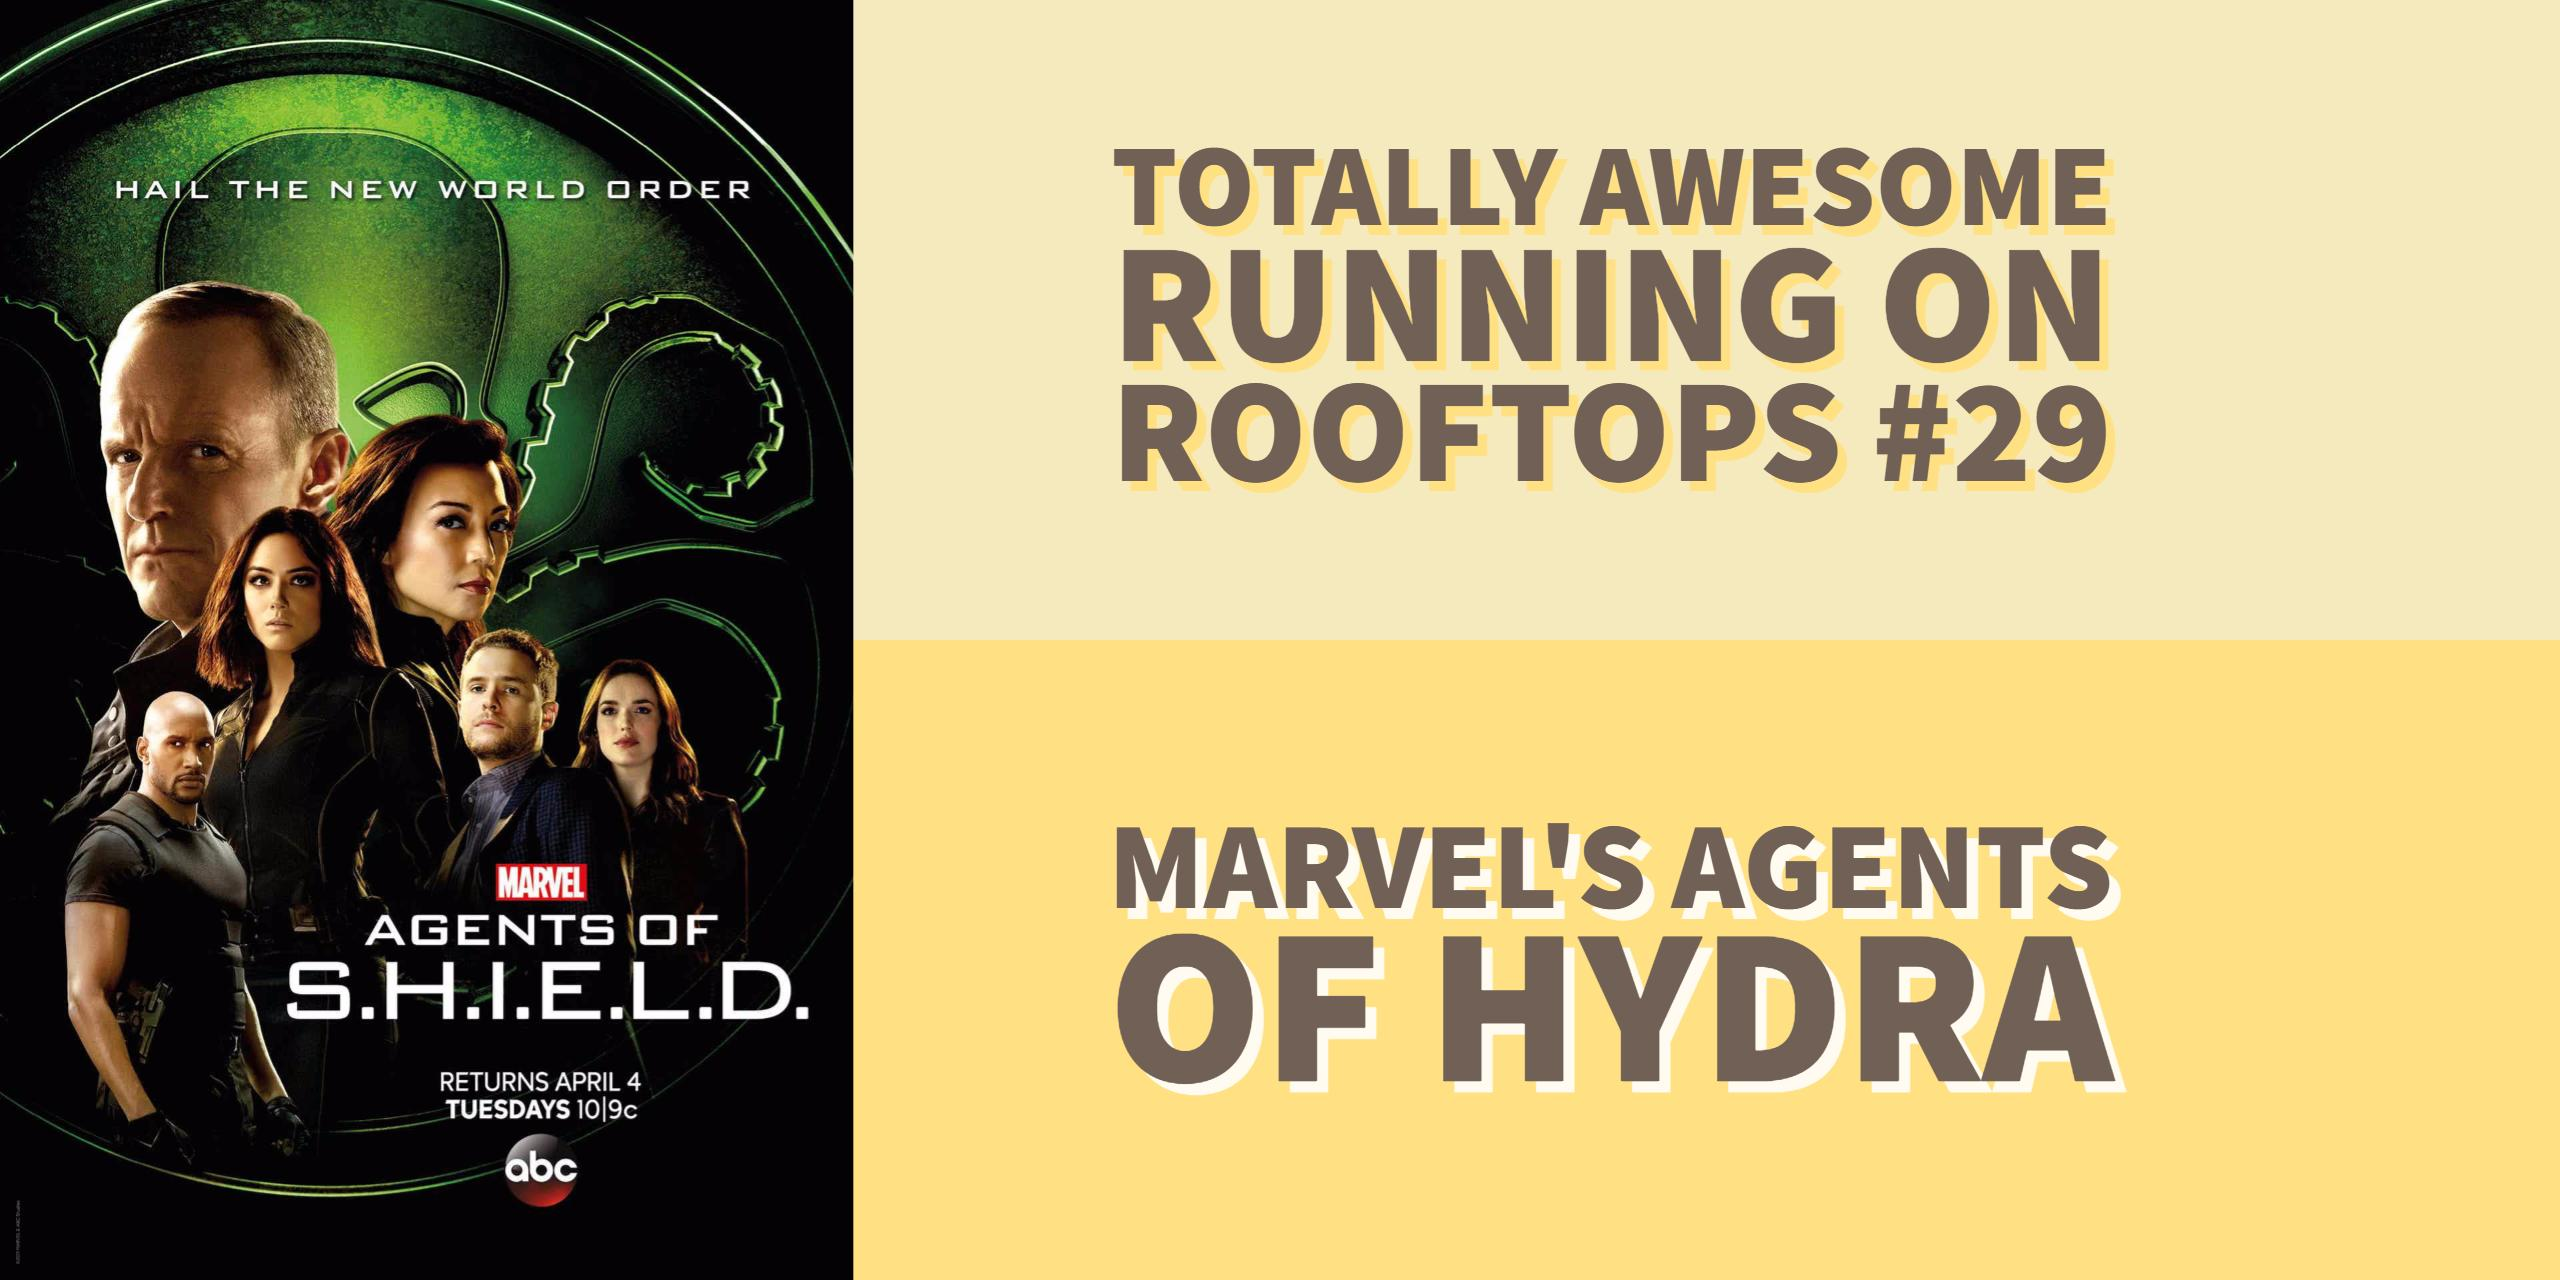 Marvel's Agent's of Hydra